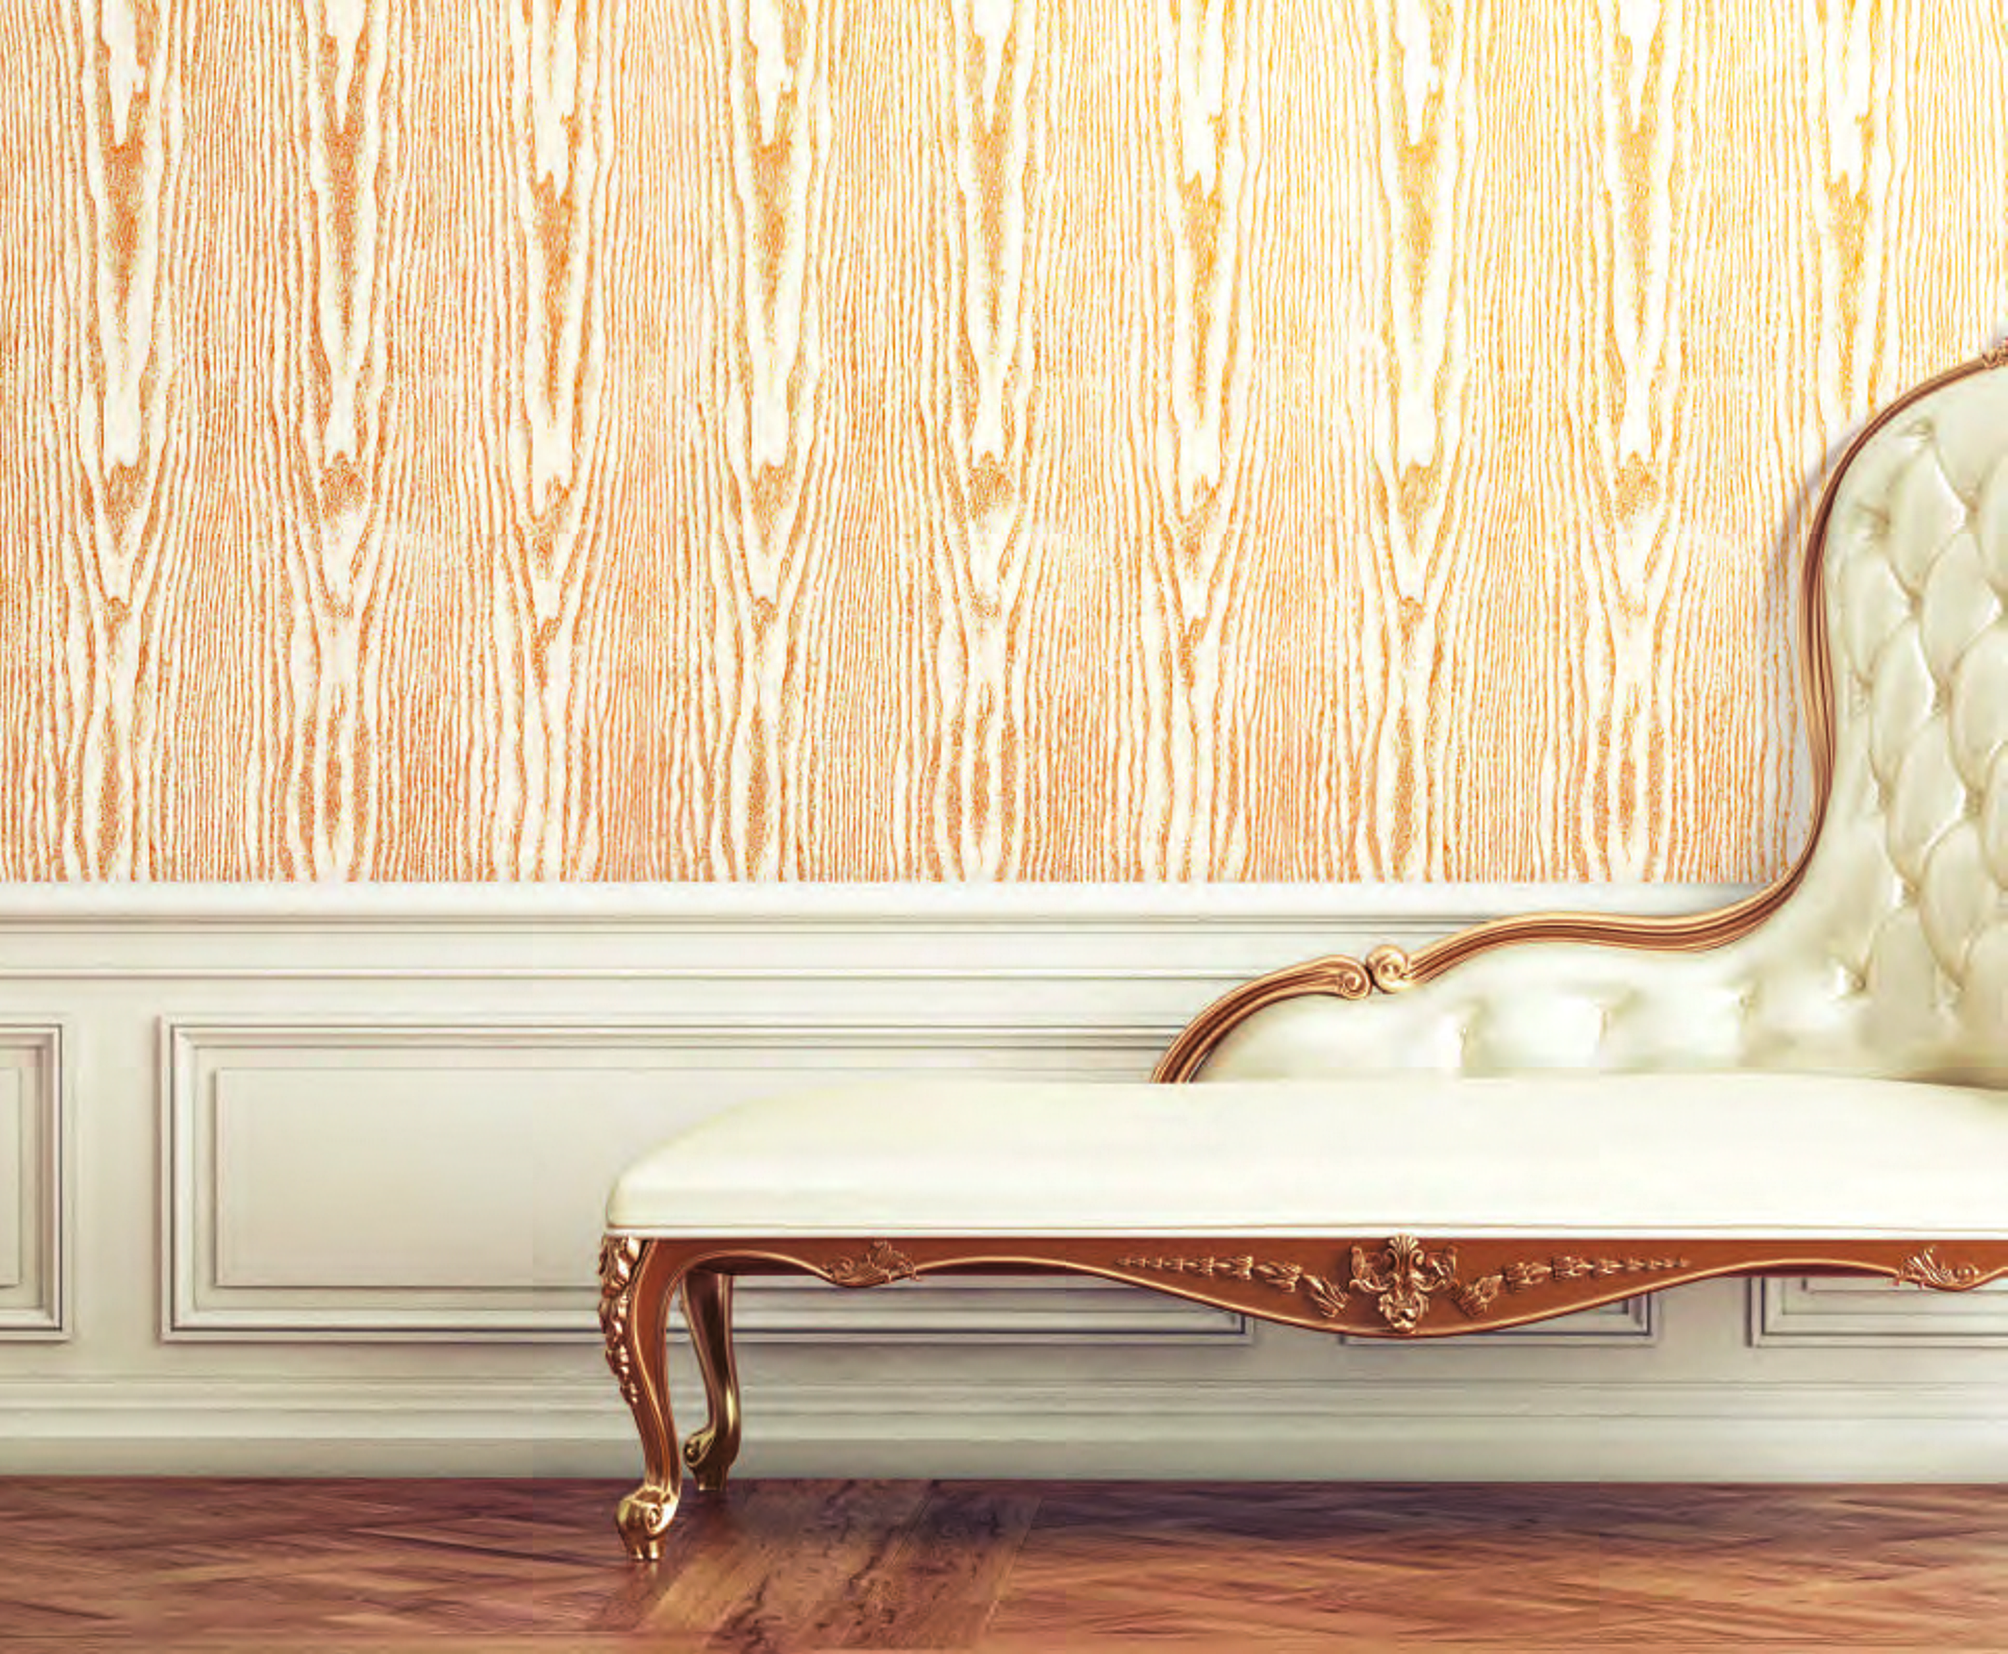 AD02 wood effect wall